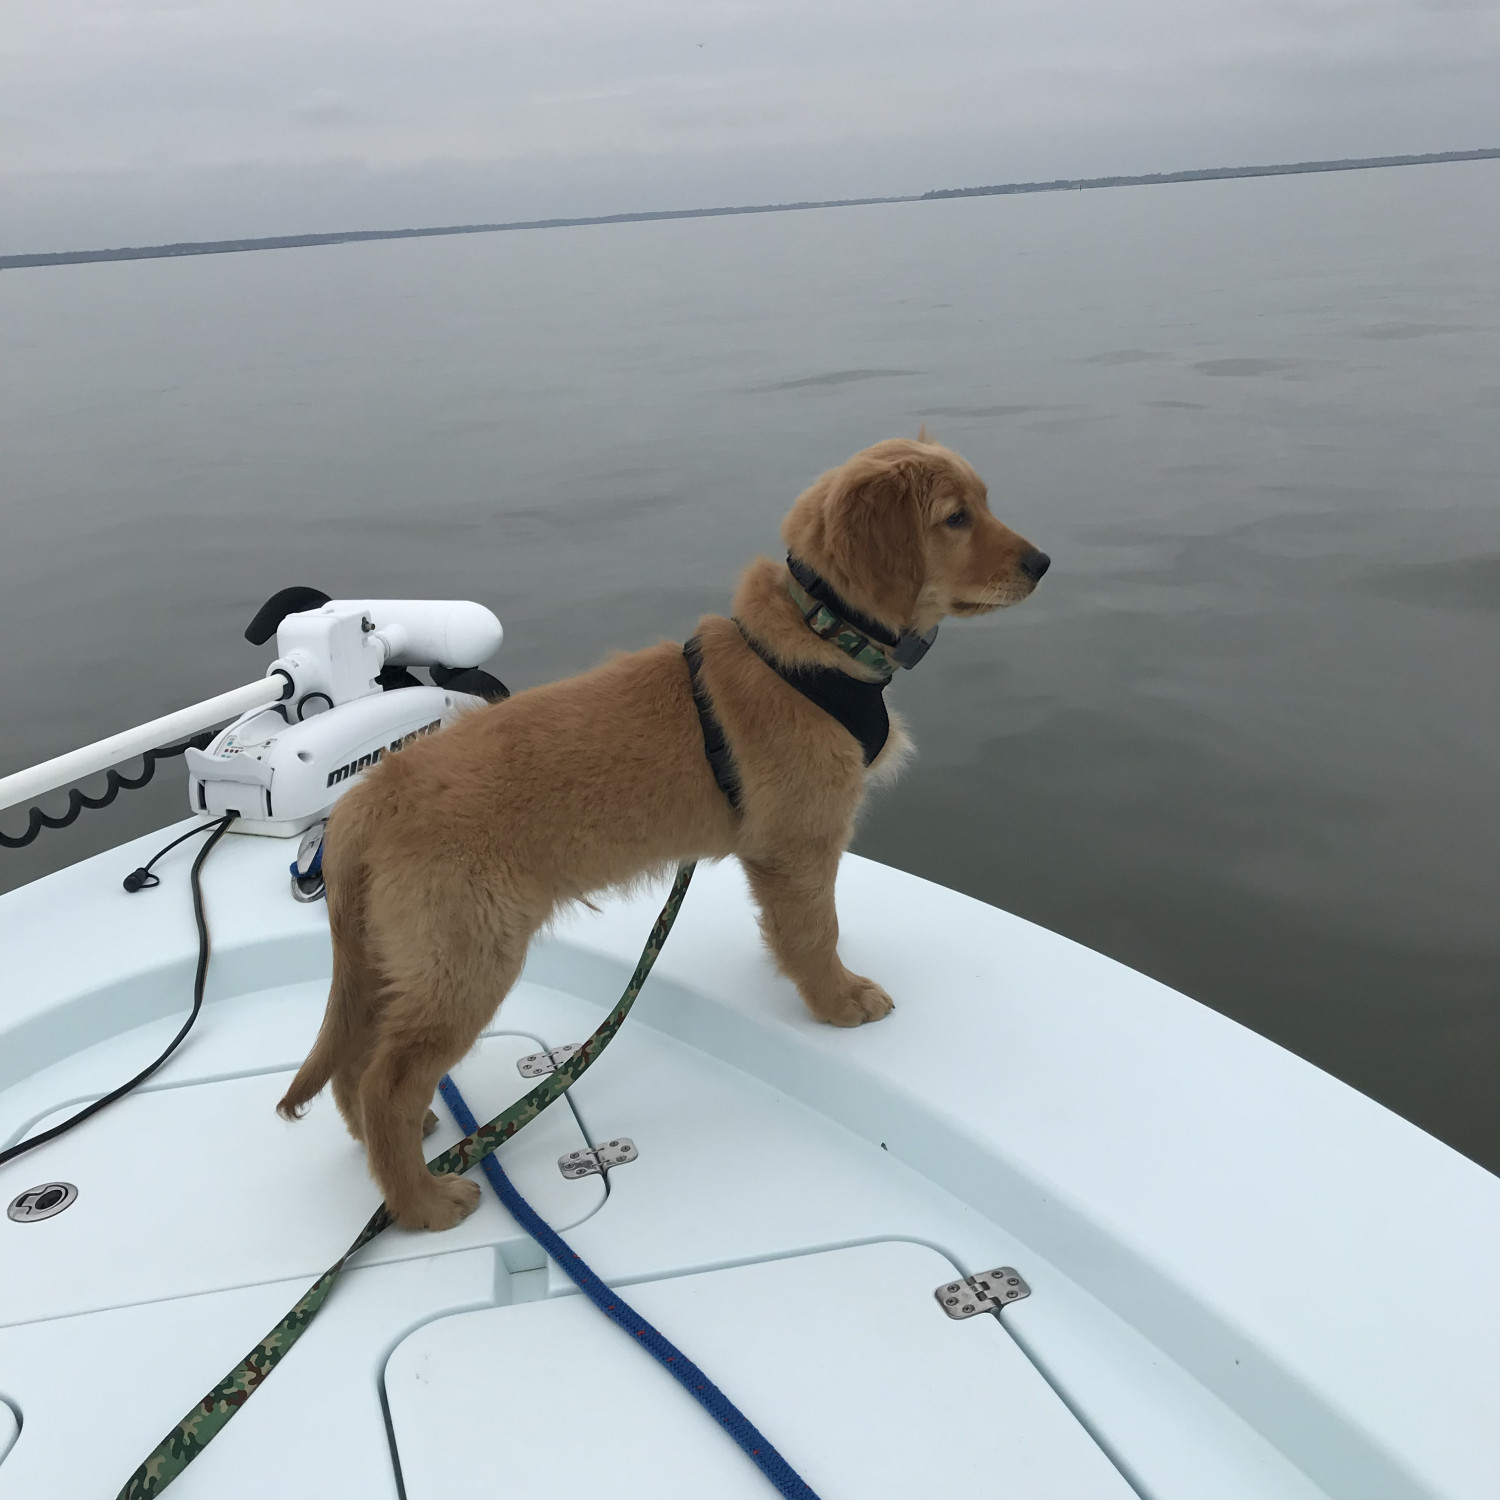 Title: Rebel's first ride - On board their Sportsman Masters 227 Bay Boat - Location: Wassaw Sound, GA. Participating in the Photo Contest #SportsmanMarch2018